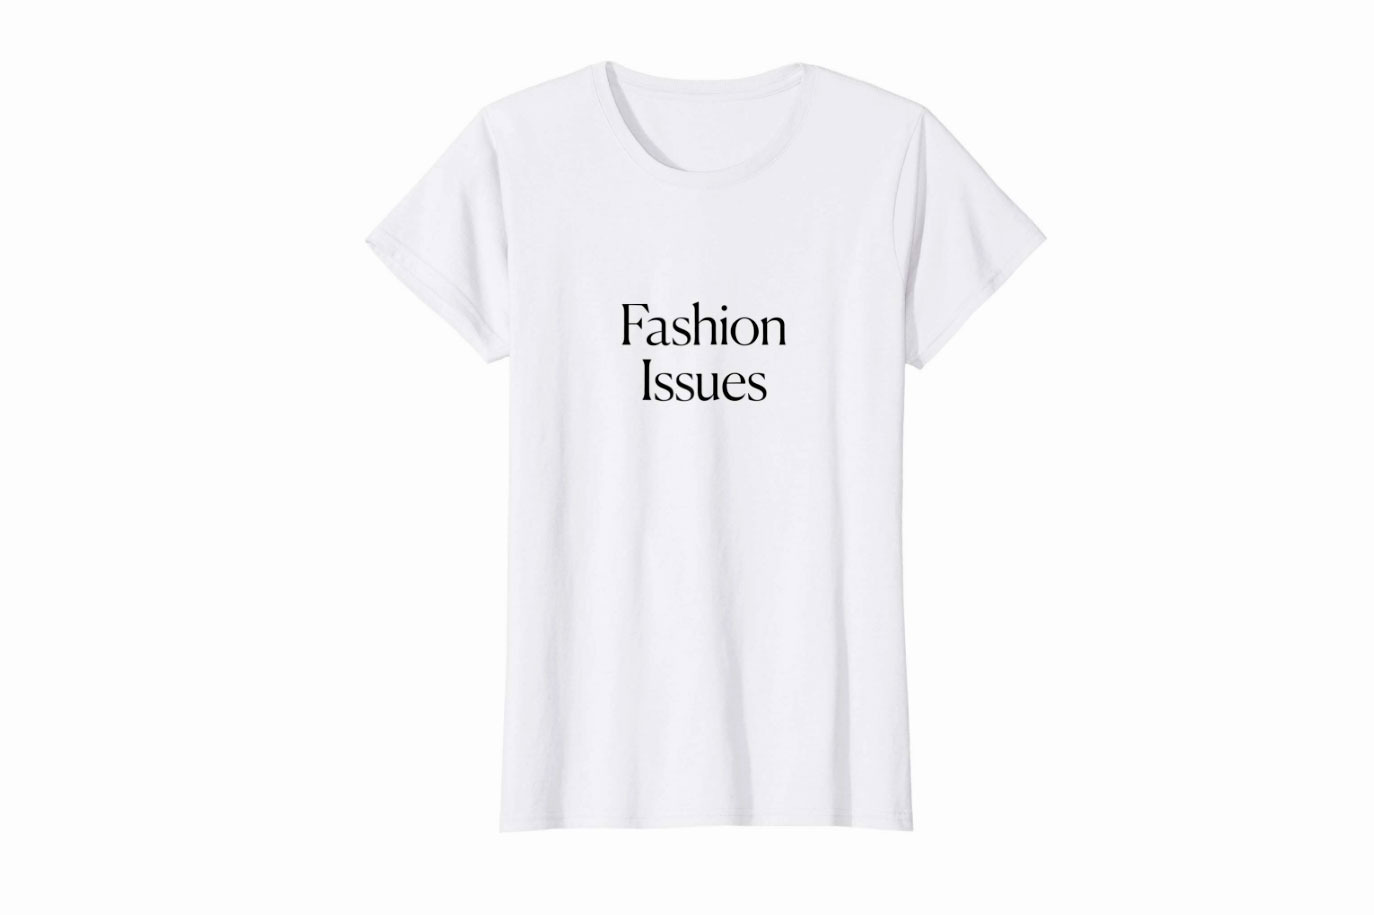 Fashion Issues Tee